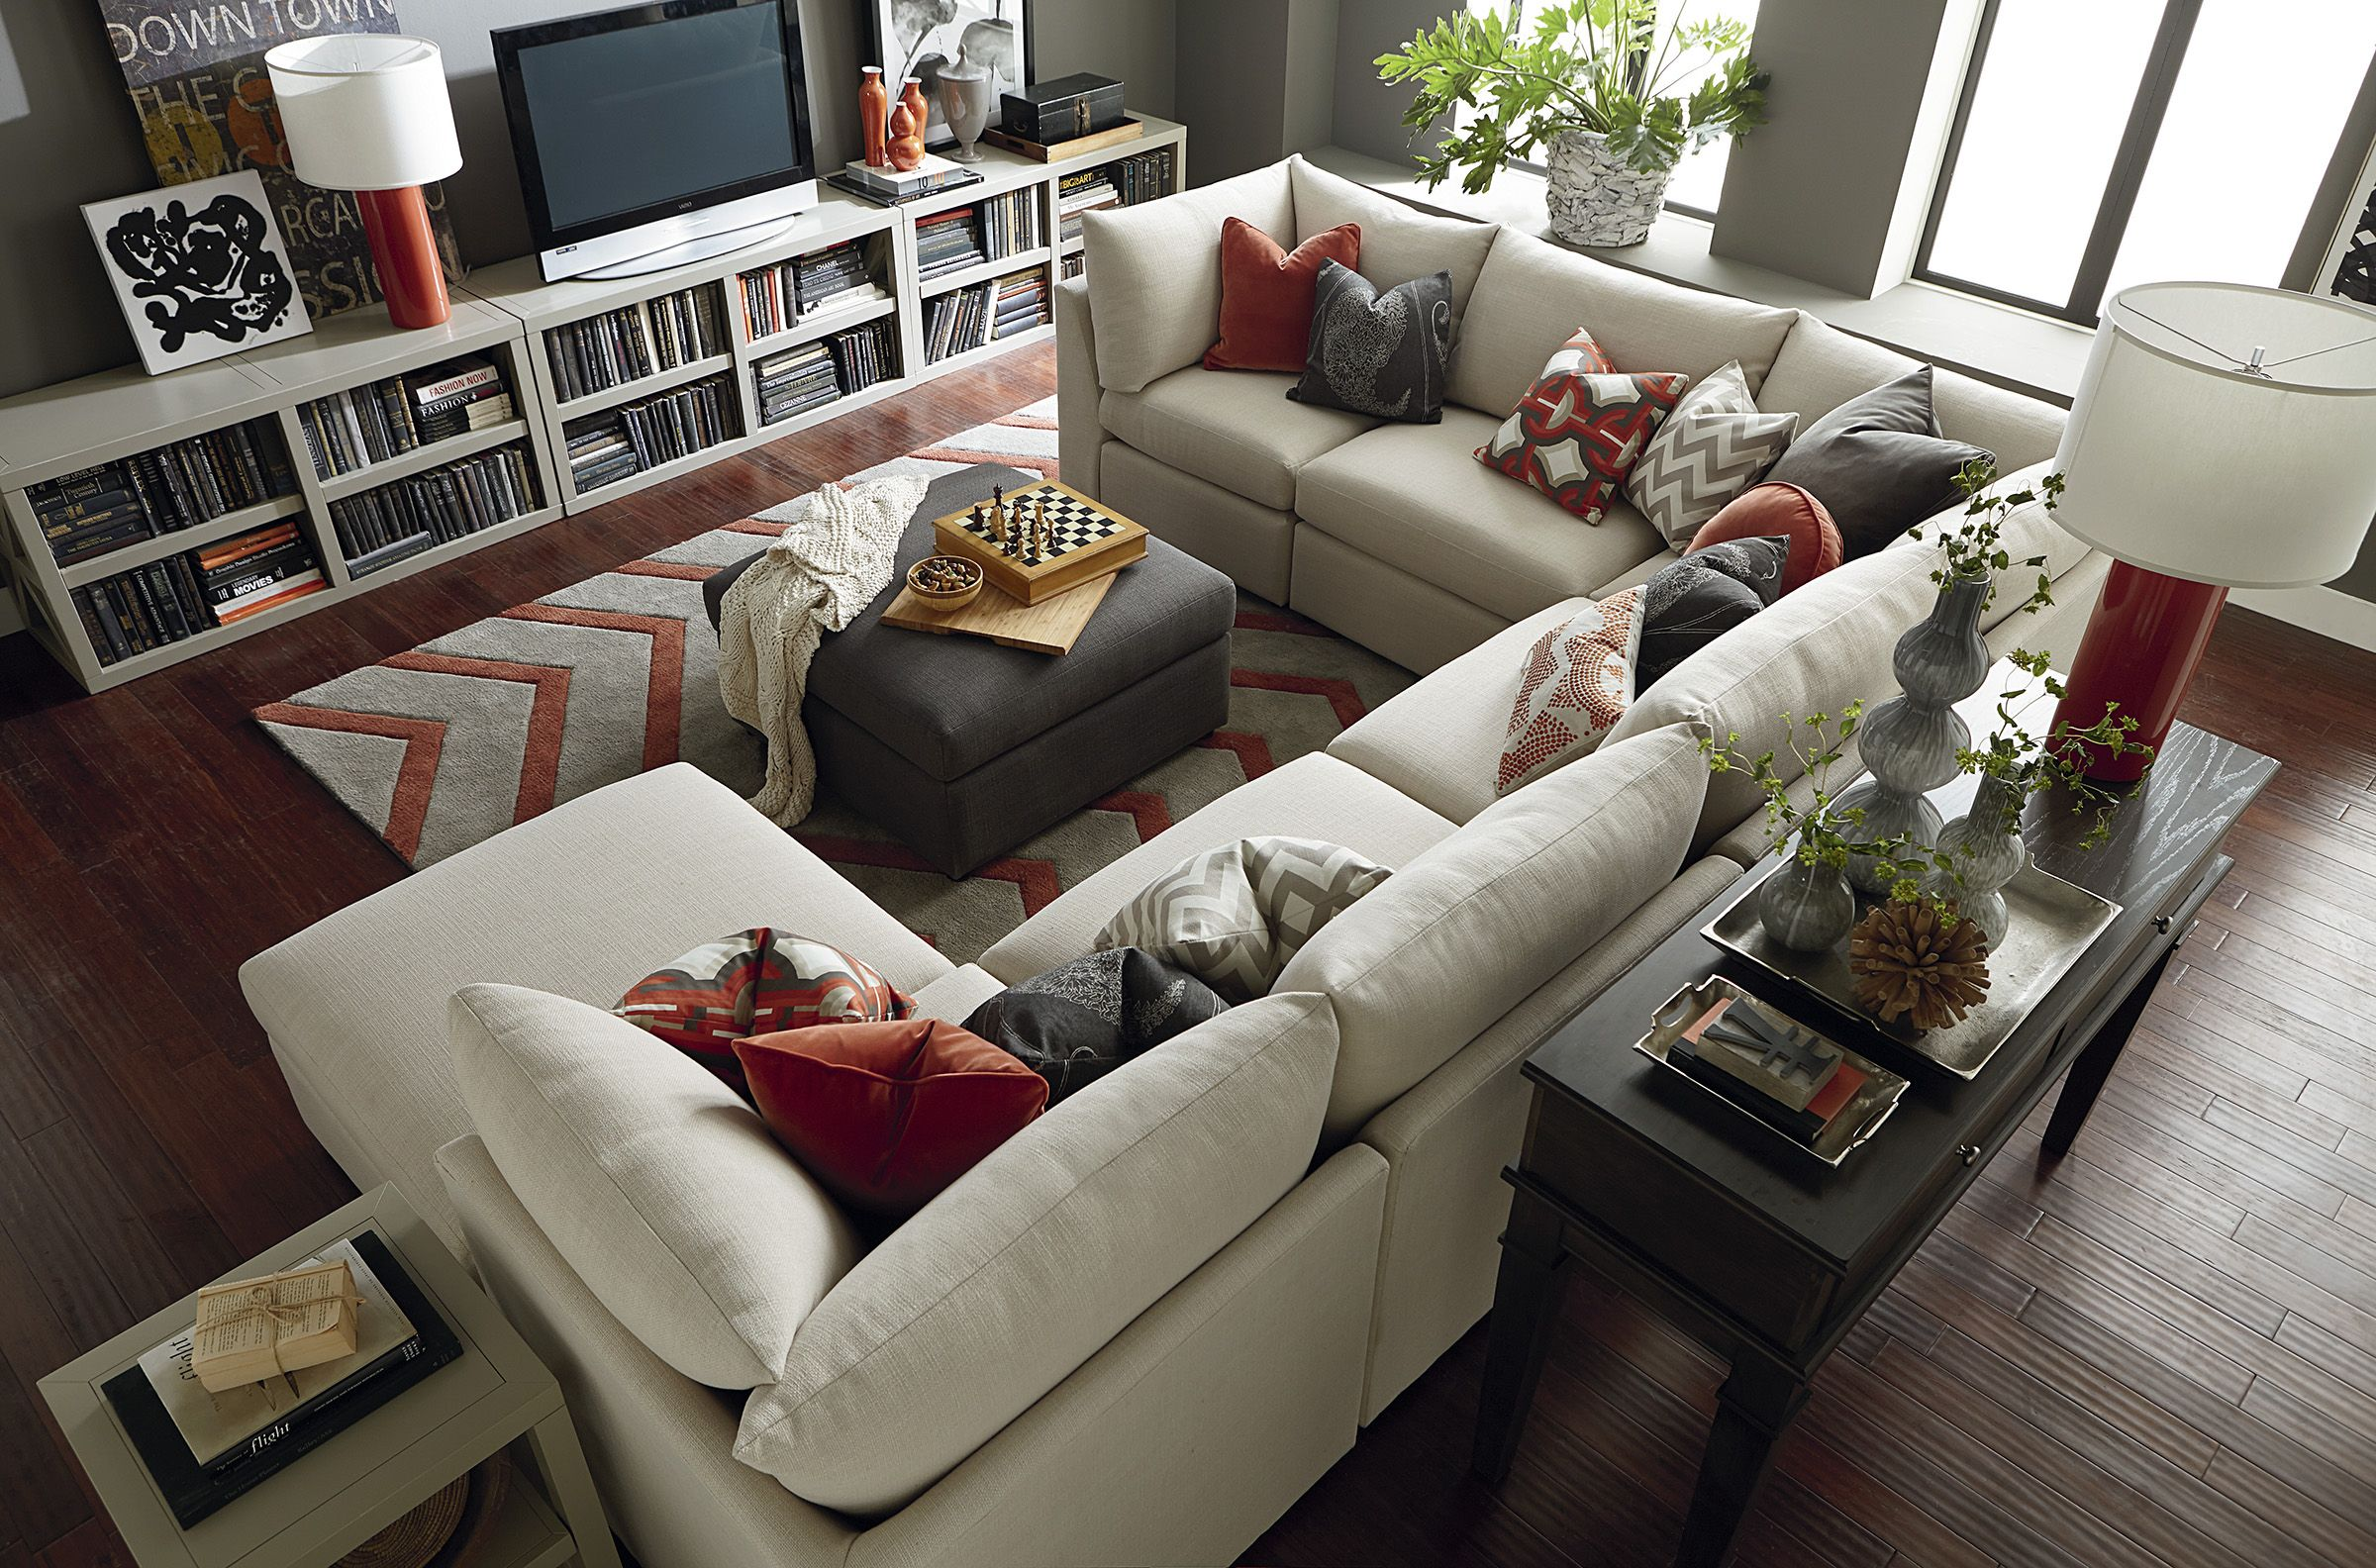 with popular the living mediasupload room sectional bassett most seats beckham sofa within dunk sofas com bright gallery harlan